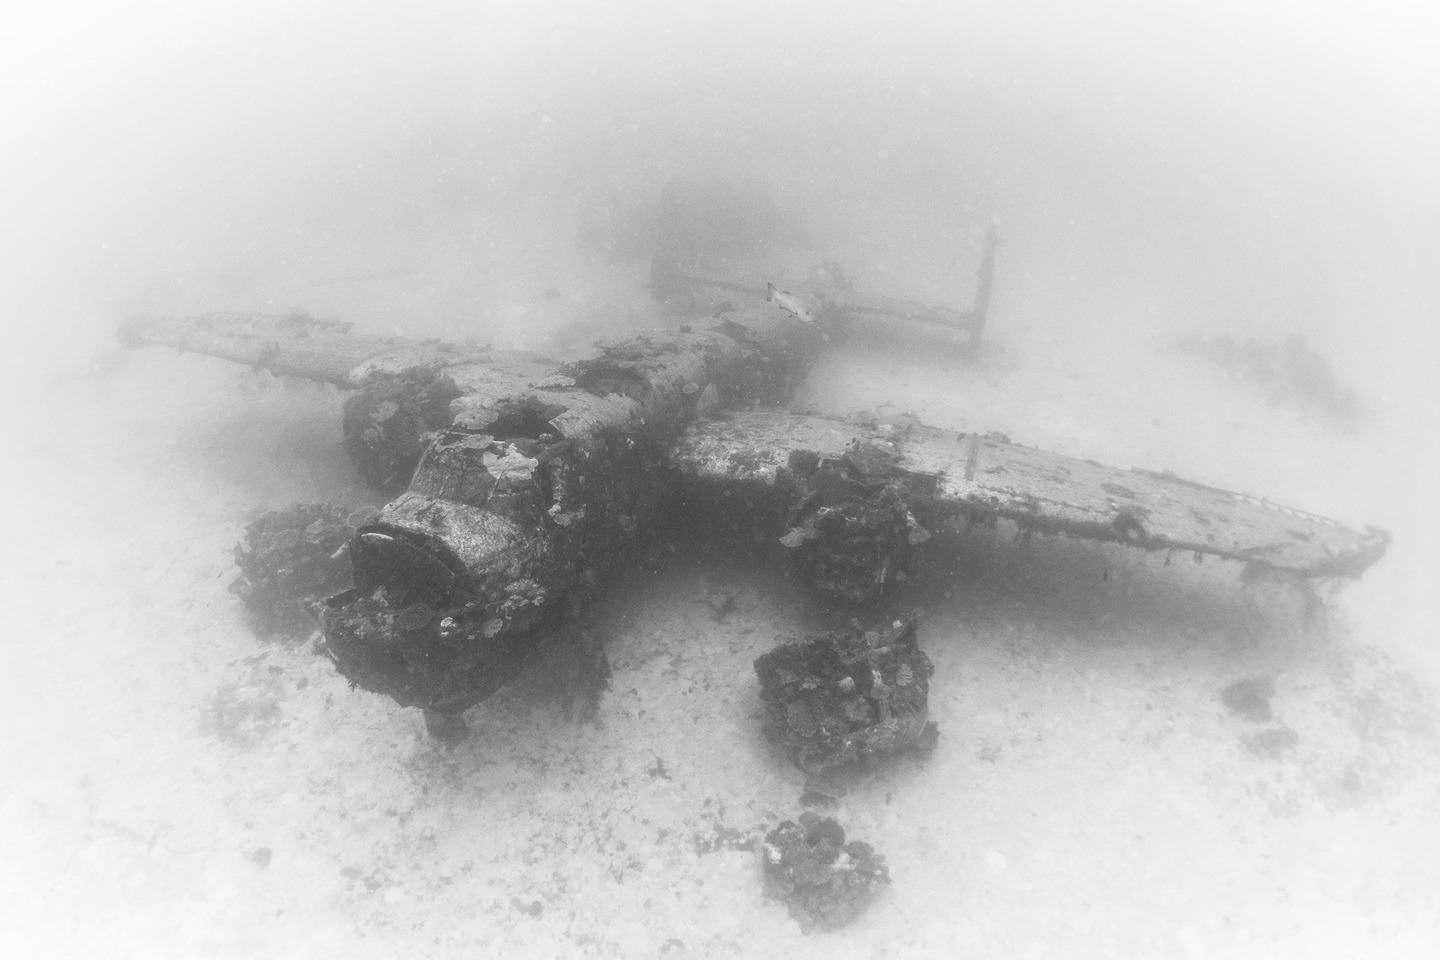 The Pacific Ocean Bed Is A Graveyard For World War II Planes  dsc8704 2